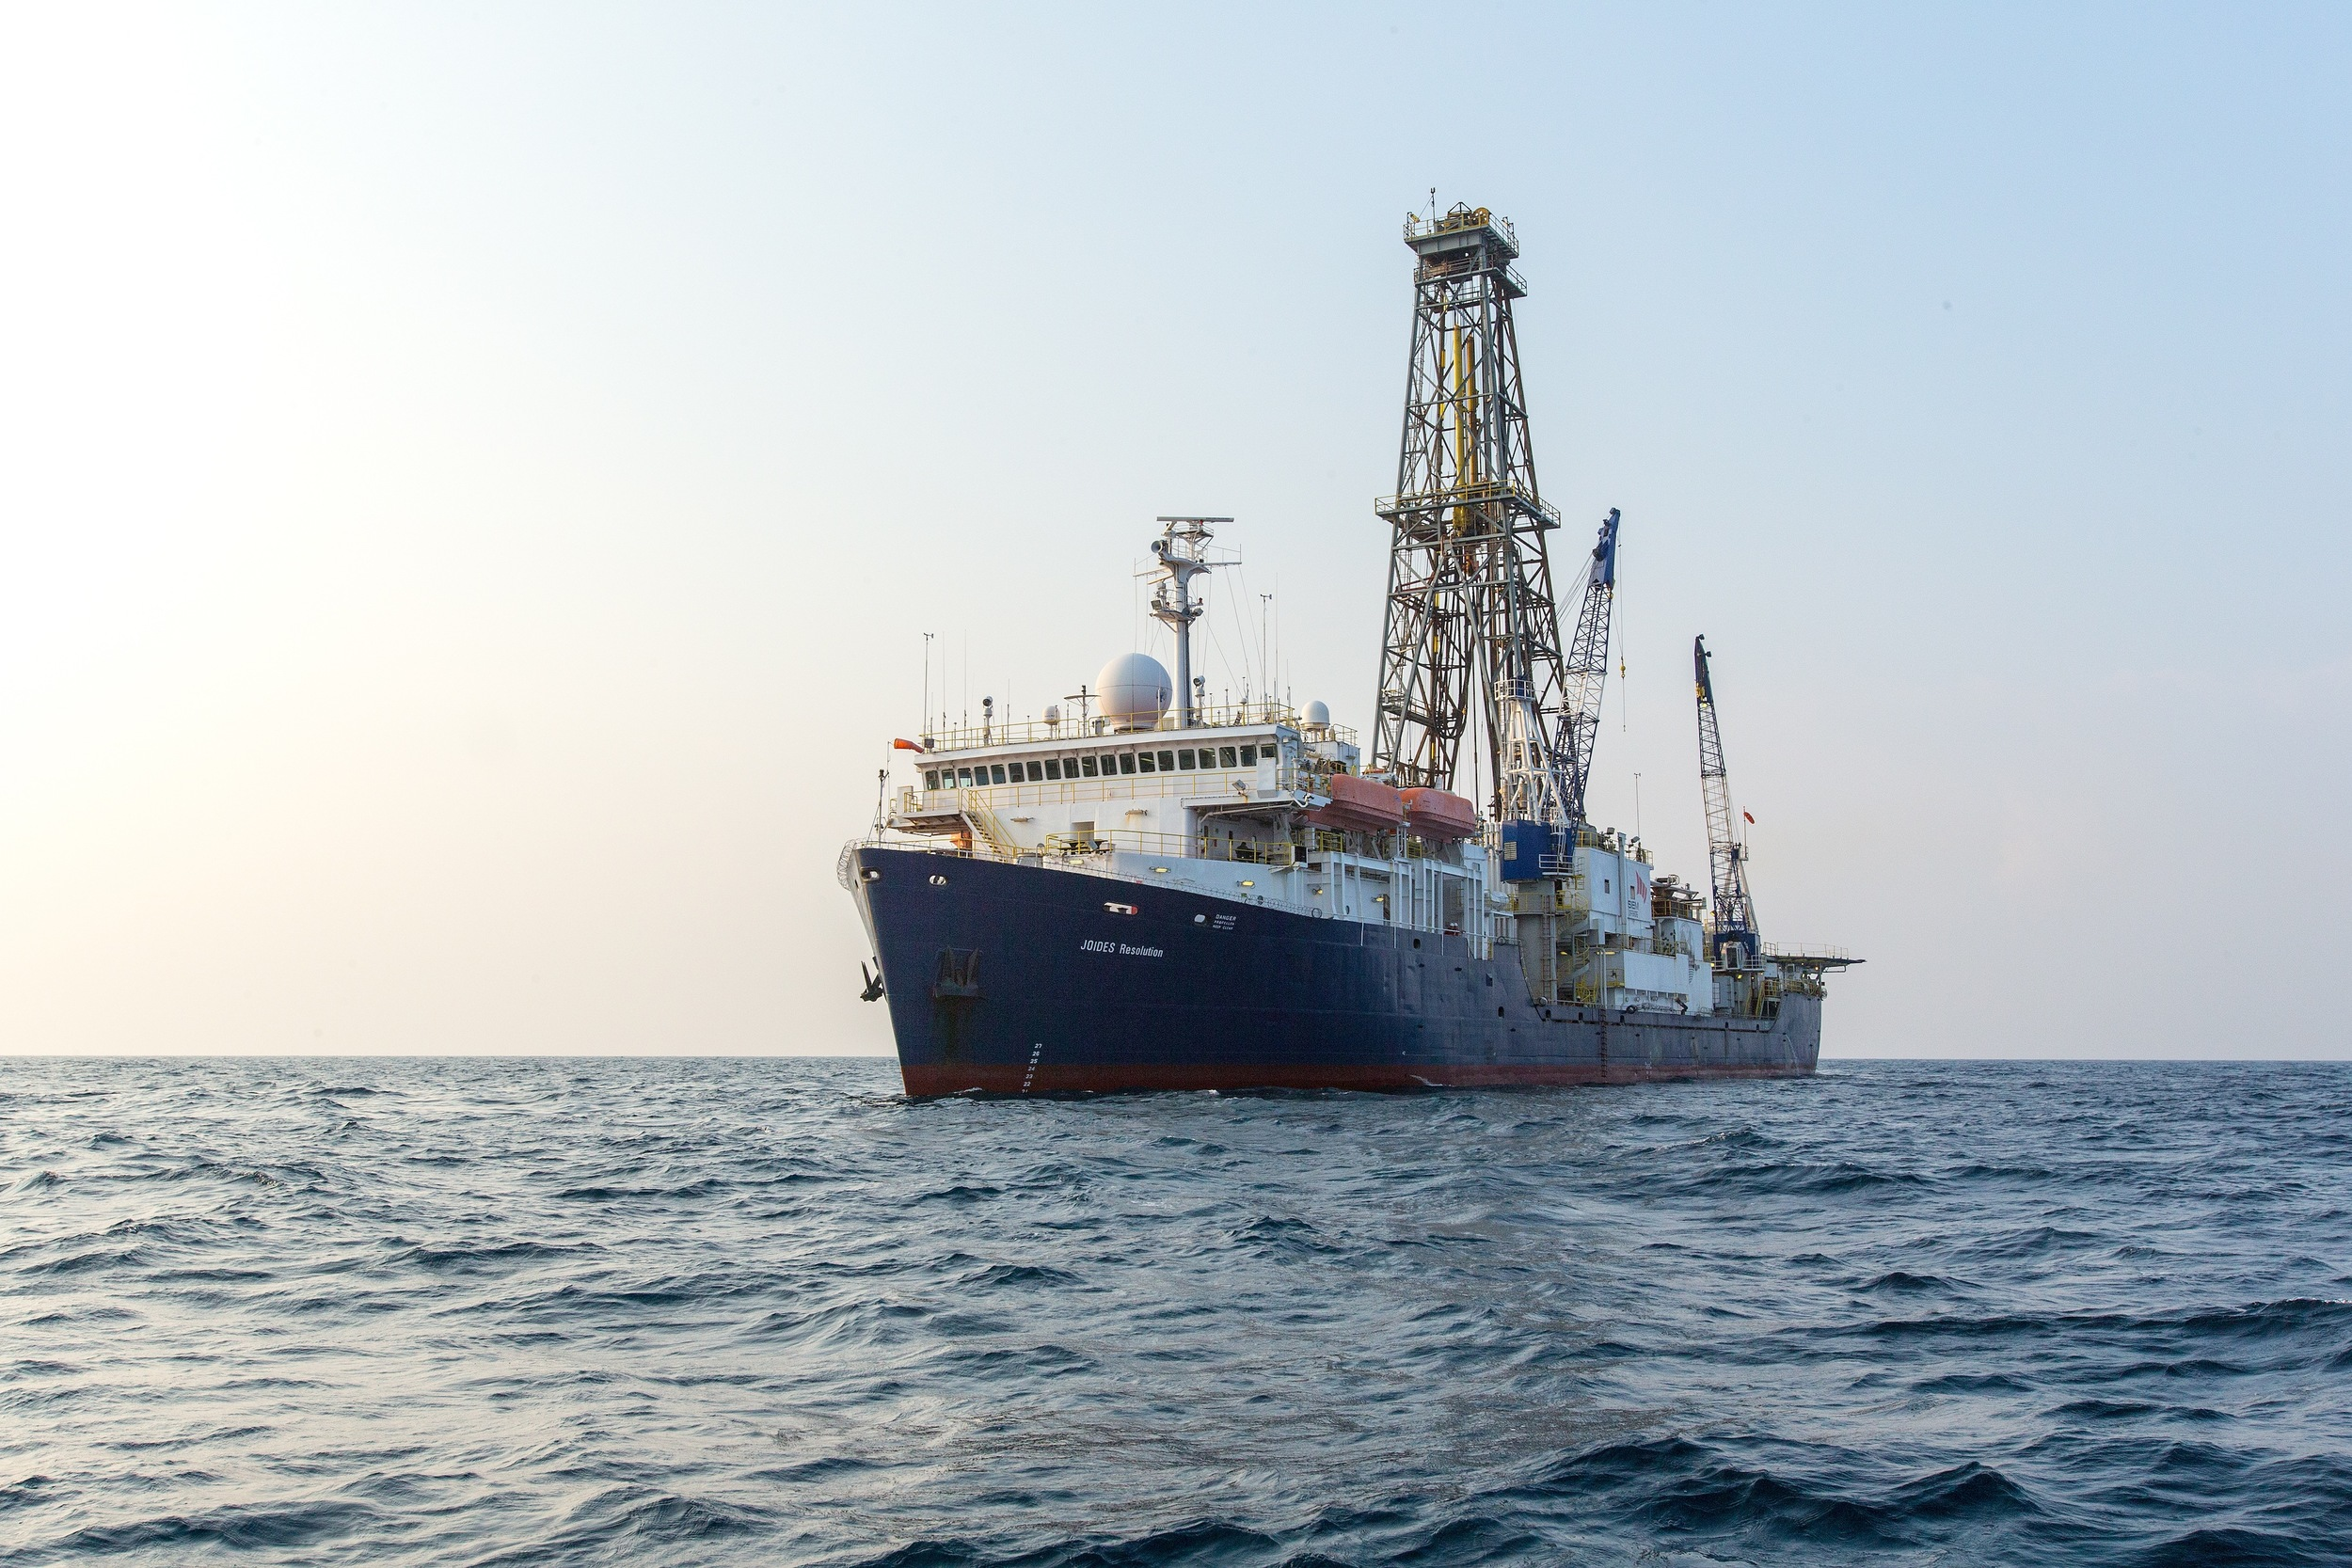 The Joides REsolution - IODP research vessel Image Credit: William Crawford IODP/TAMU